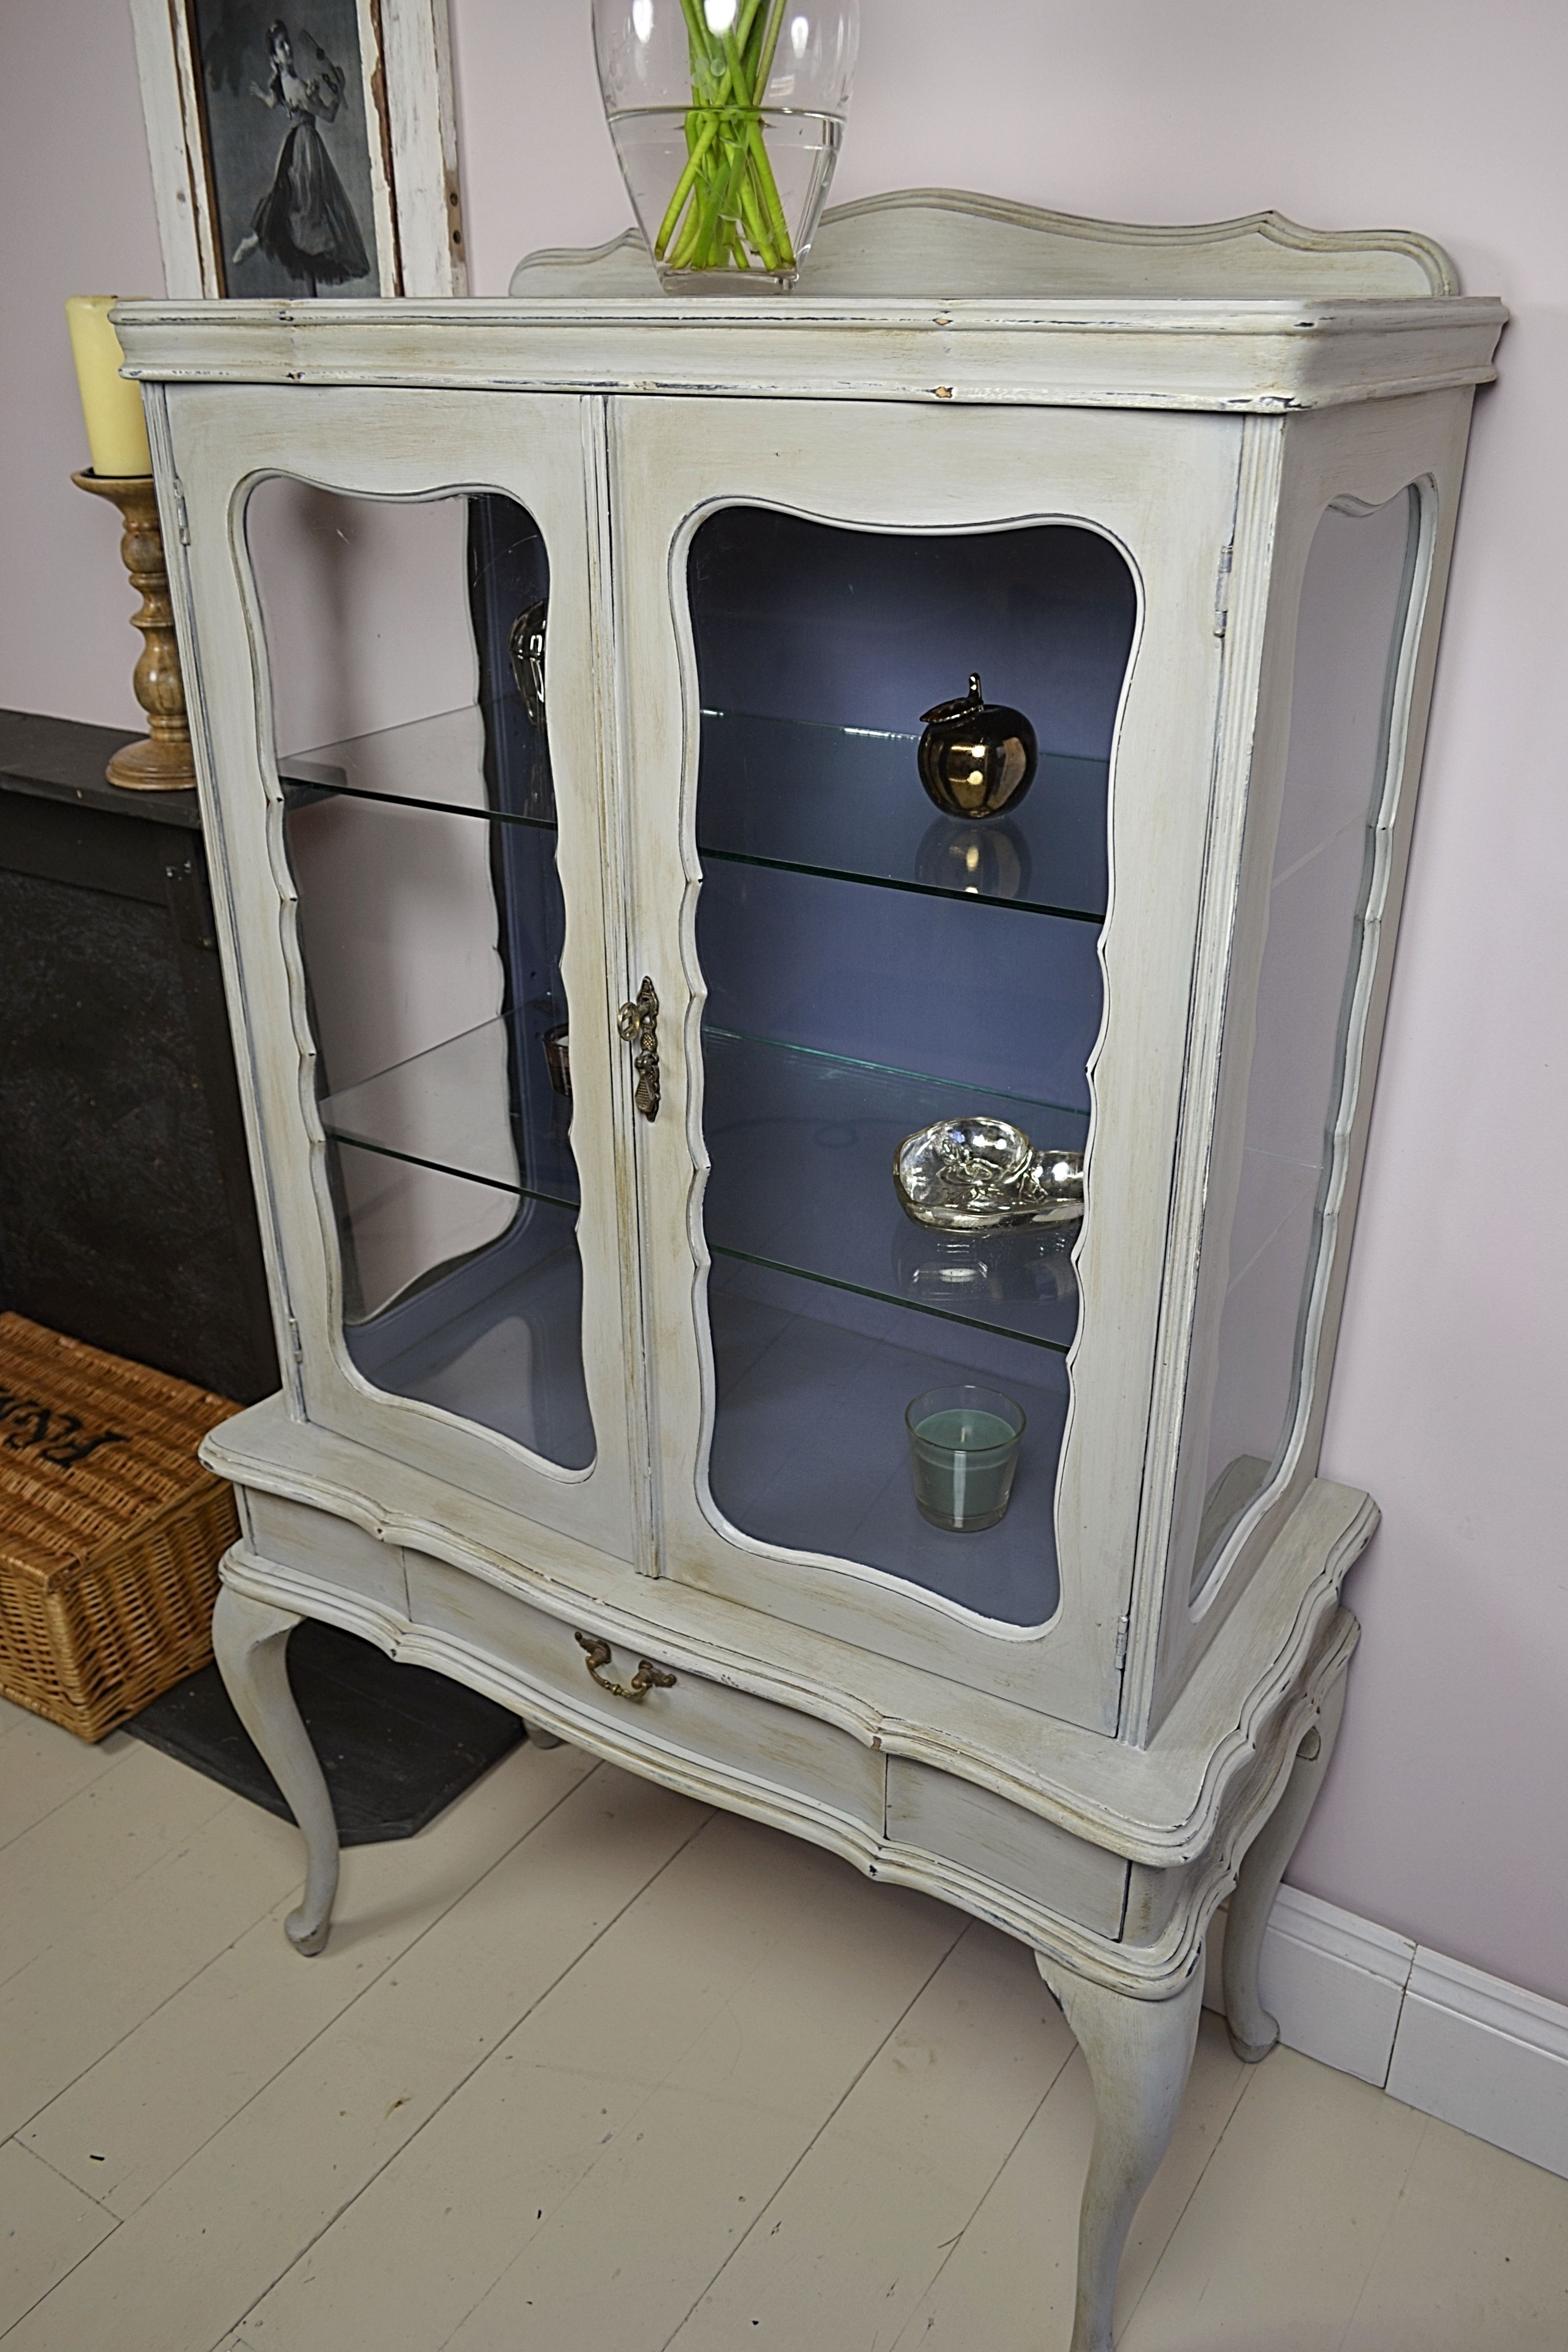 Hand Painted In Annie Sloan Paris Grey With Old Violet Inside To Give An Elegant Backdrop